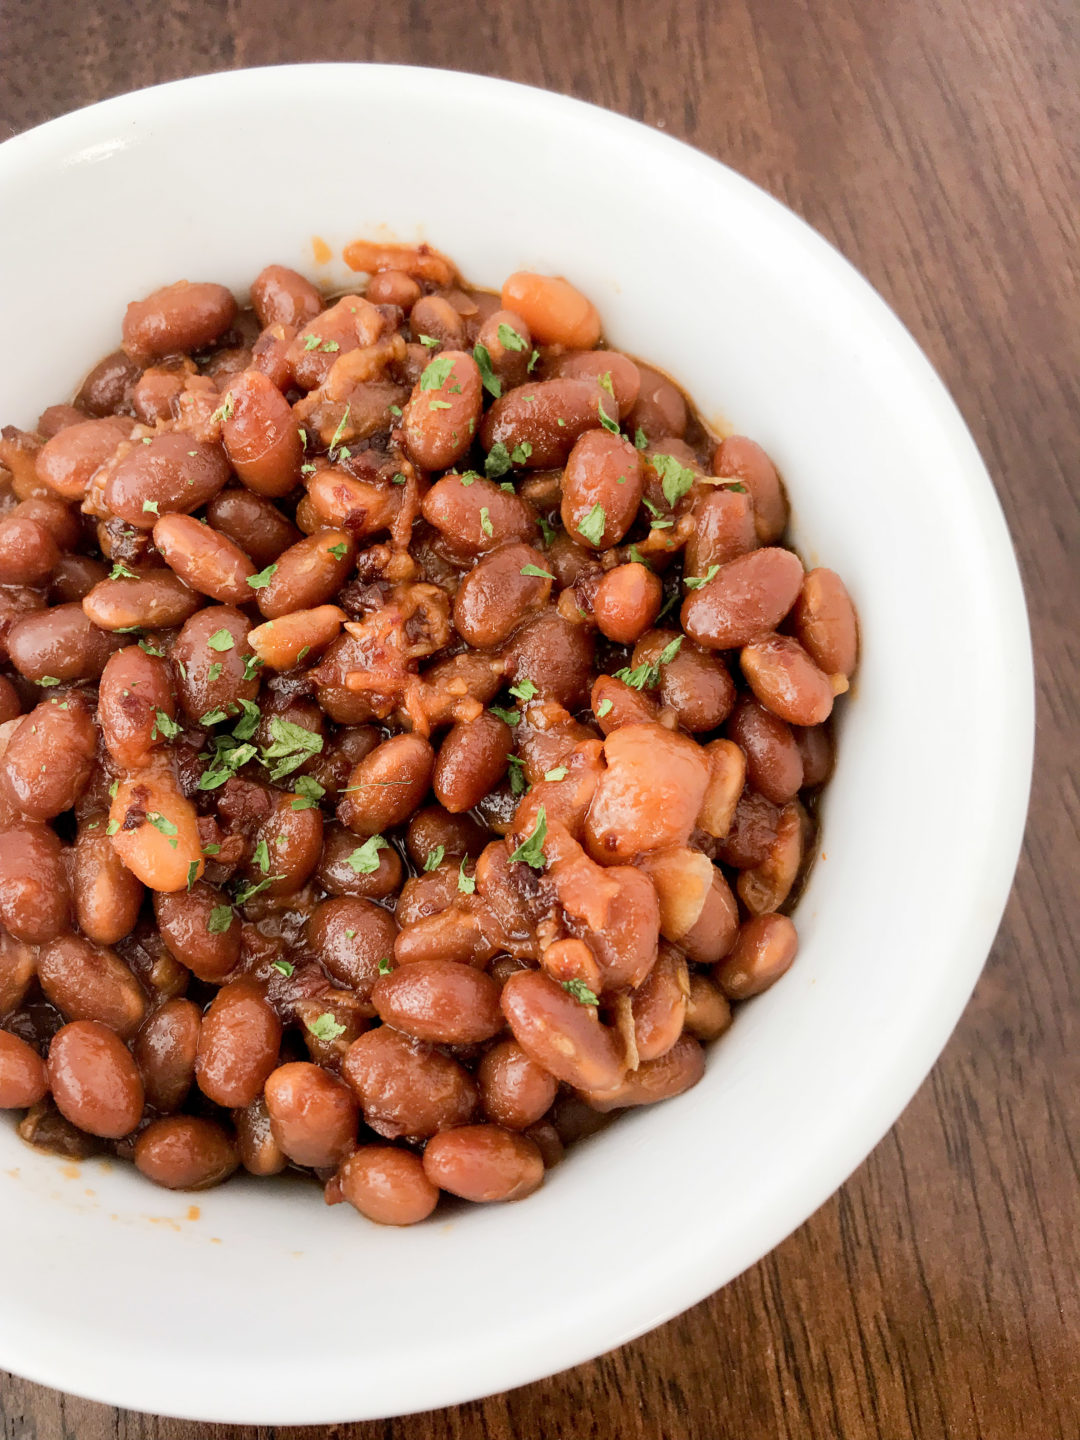 These Instant Pot BBQ Brown Sugar Baked Beans may be one of the easiest recipes I've ever cooked. You literally just dump all of the ingredients into the Instant Pot and walk away. No fuss, no muss.  This is an adaptation of my husband's crockpot beans, but instead of taking 6 hours to make, they only take an hour in the Instant Pot! #instantpotrecipe #bbqrecipe #brownbeans #tailgating